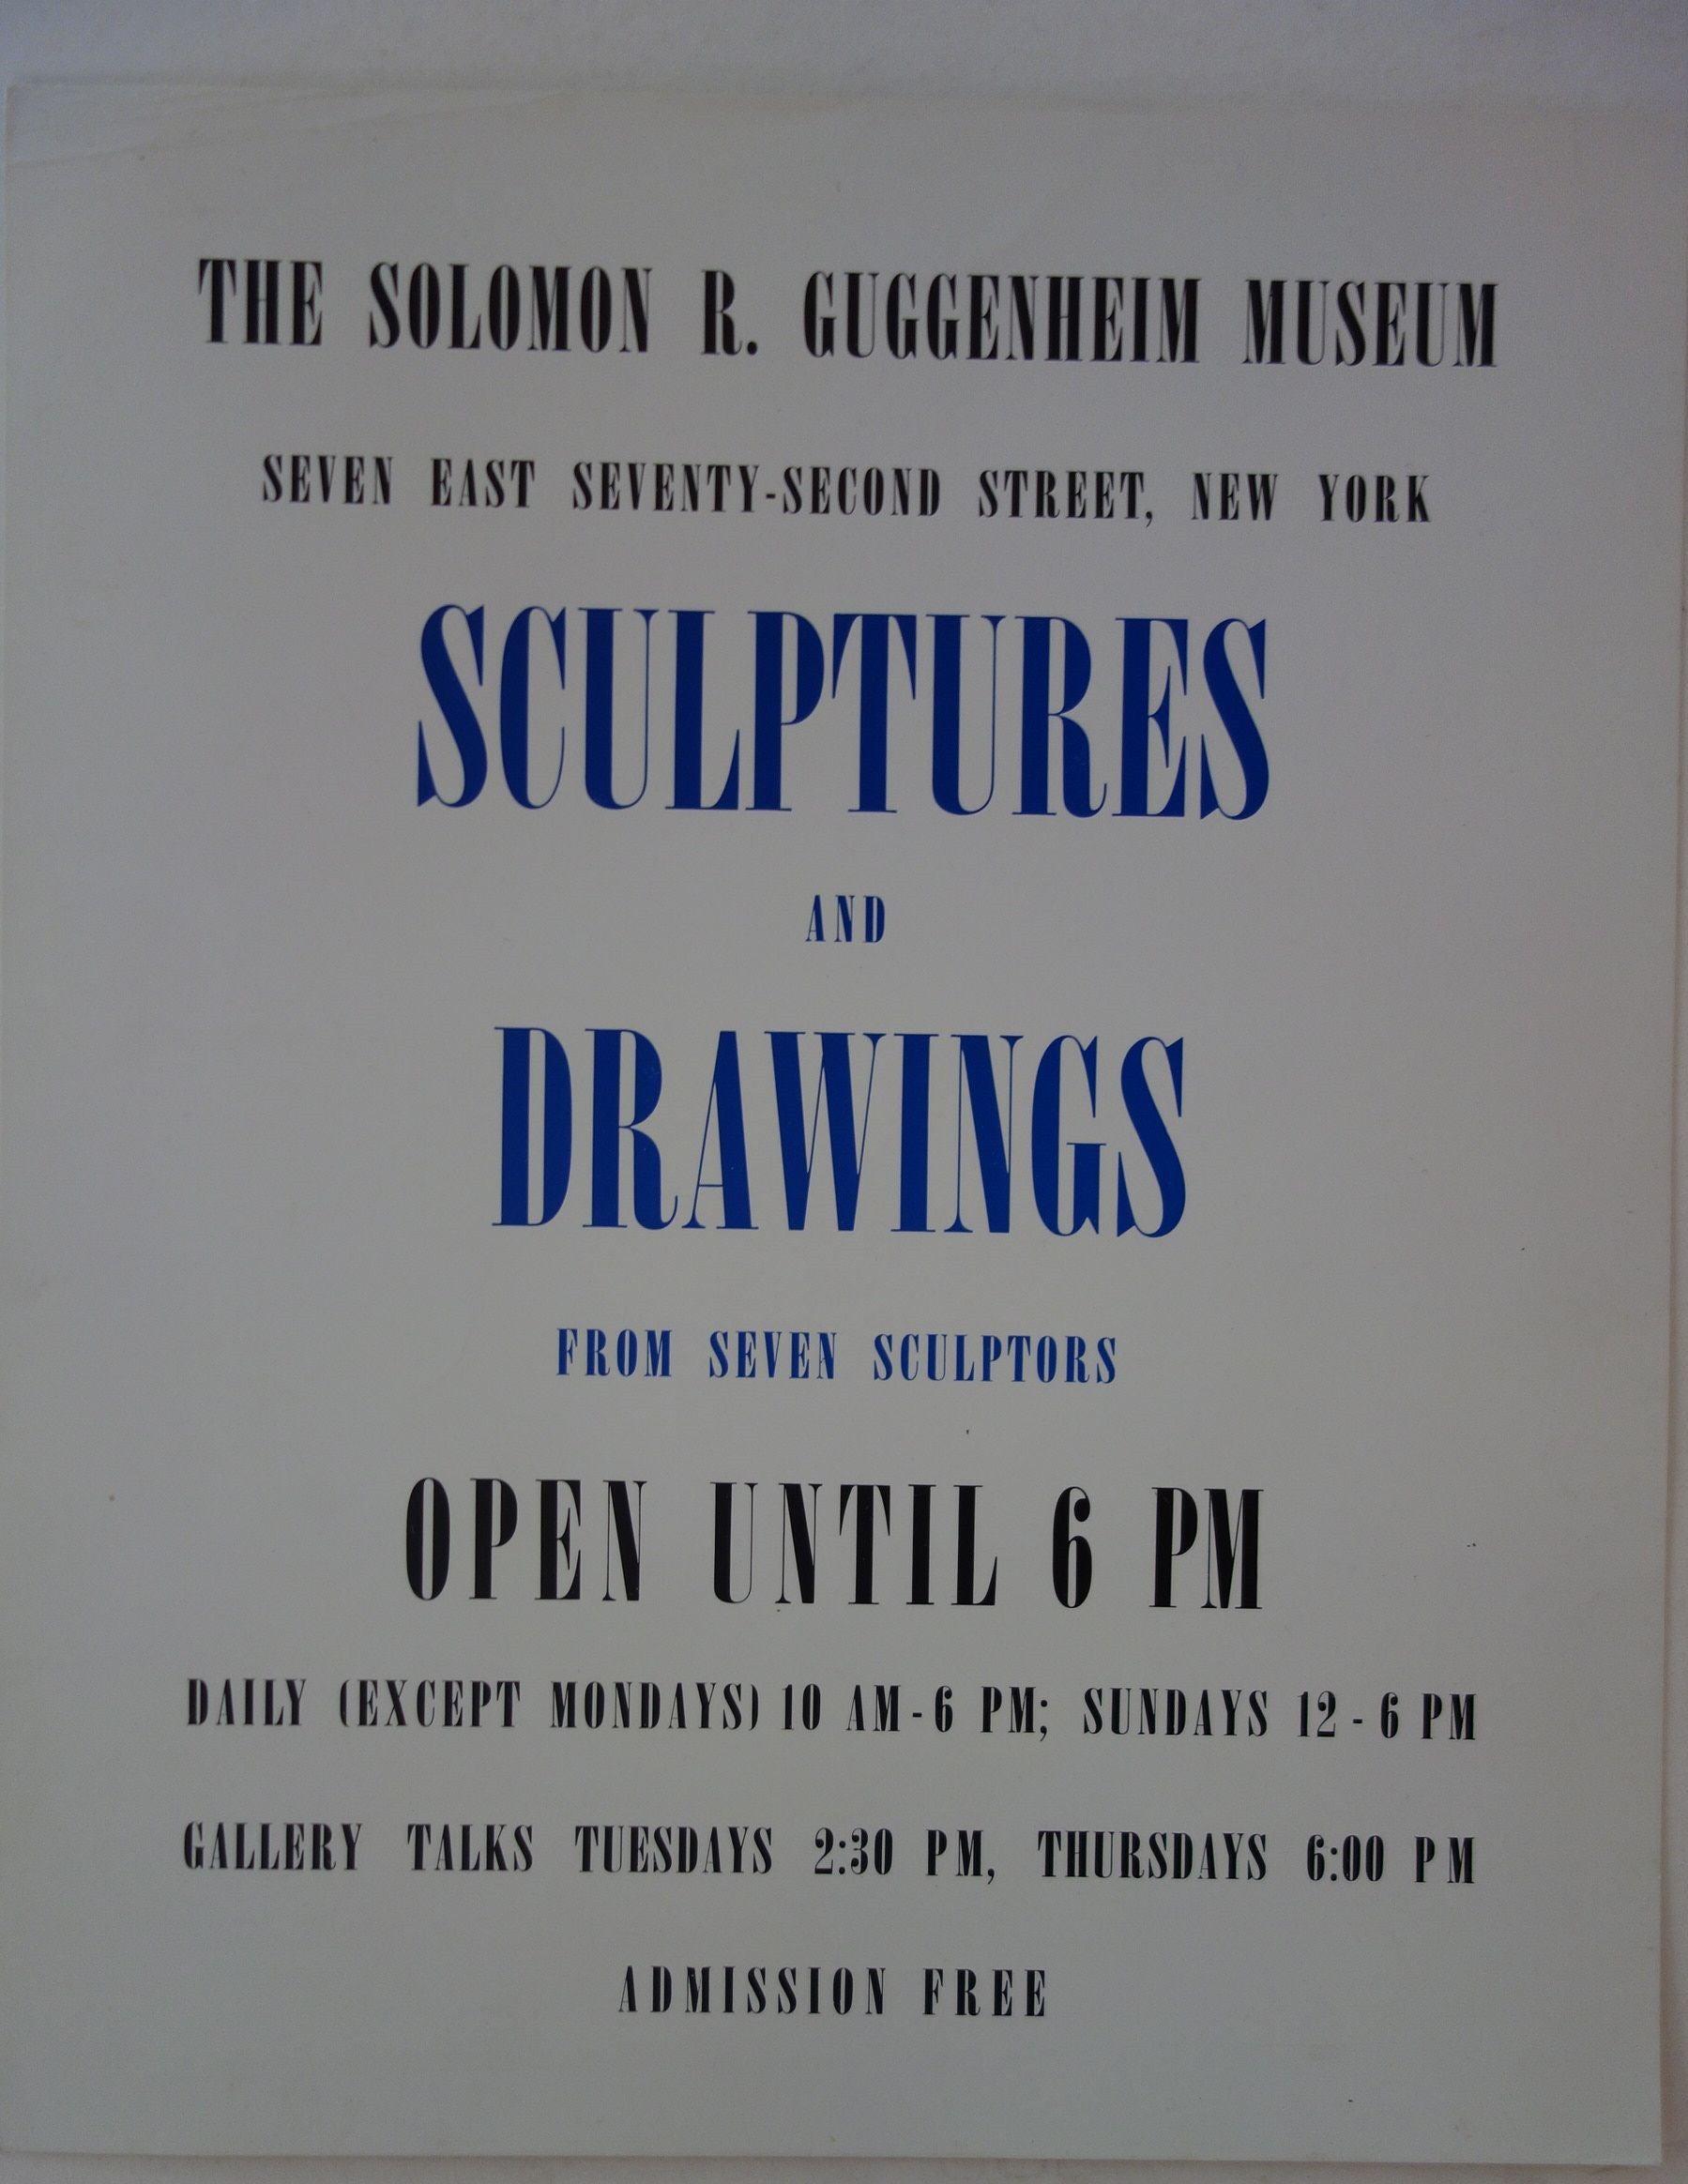 Sculptures and Drawings from Seven Sculptors